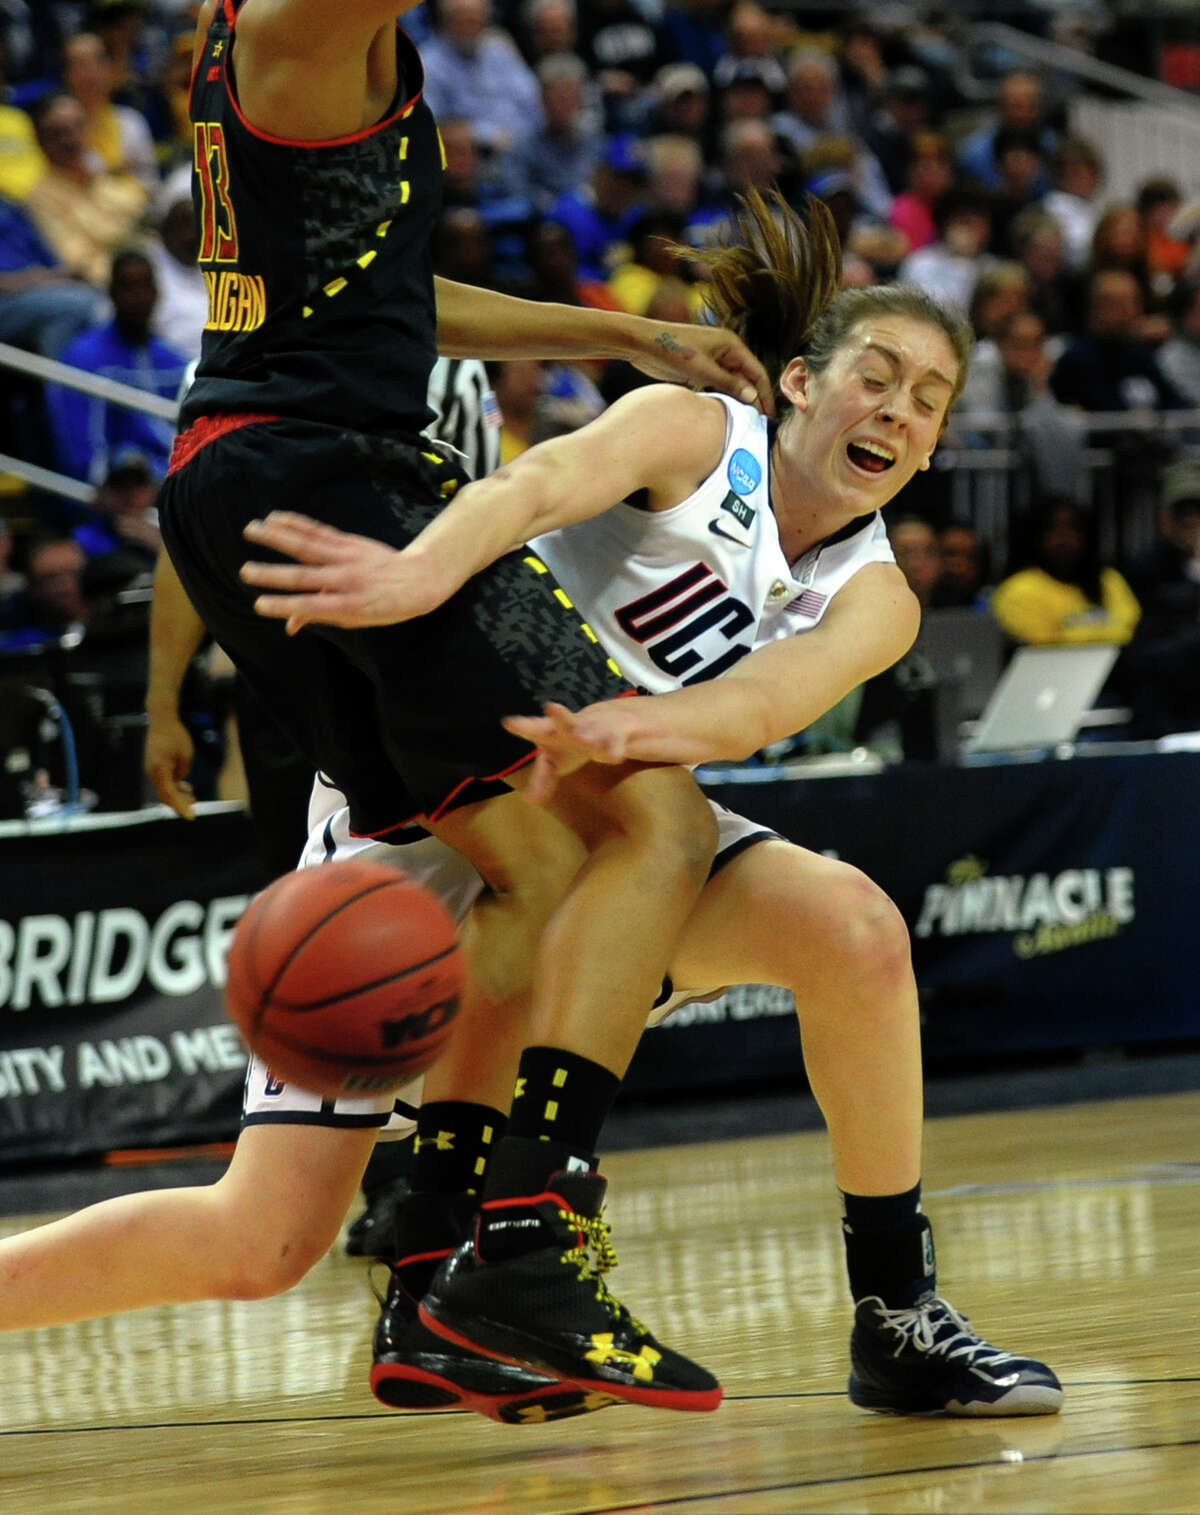 UConn's Breanna Stewart passes the ball around University of Maryland's Alicia DeVaughn, during the women's NCAA Tournament Regional Semifinals at the Webster Bank Arena in Bridgeport, Conn. on Saturday March 30, 2013.